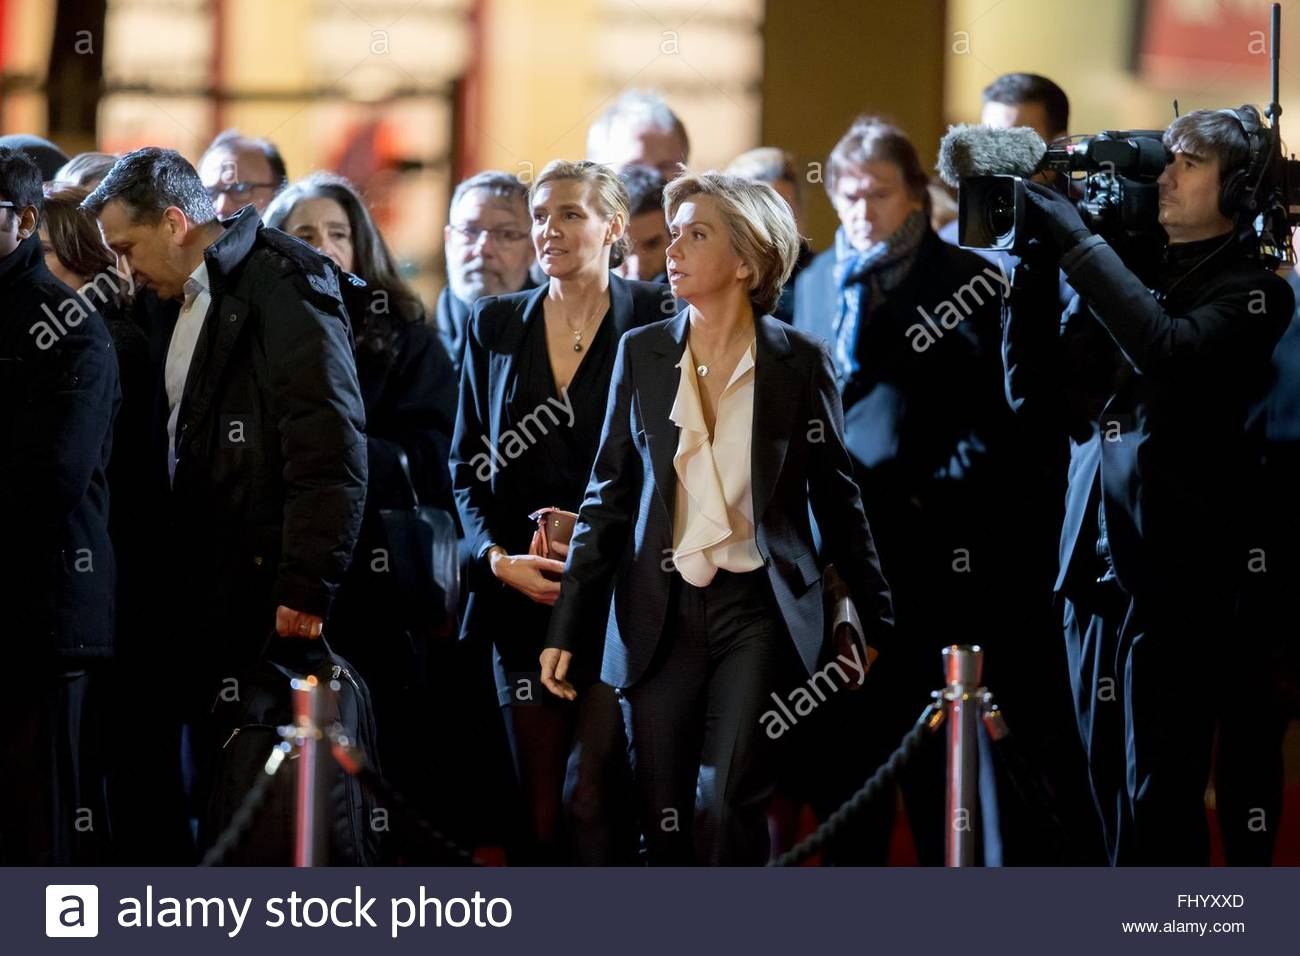 Paris, France. February 26th, 2016. FRANCE, Paris: French President of the Regional Council of Ile-de-France Valerie - Stock Image